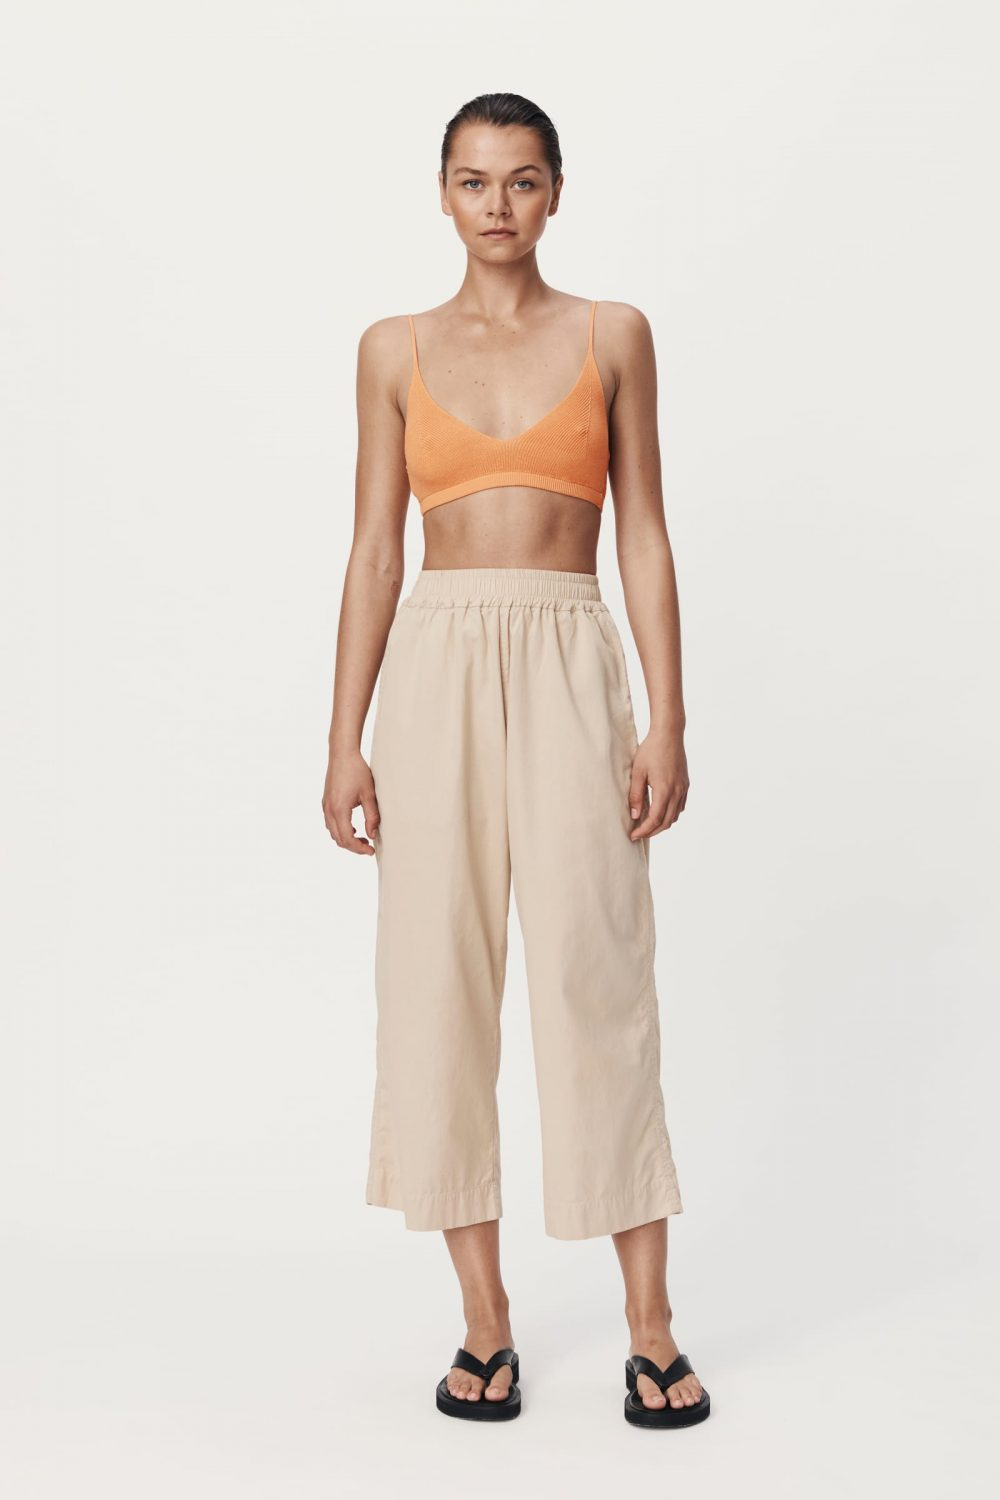 Rowie The Label Rs21 Popf Phillip Organic Pant Fawn Spring21 0131